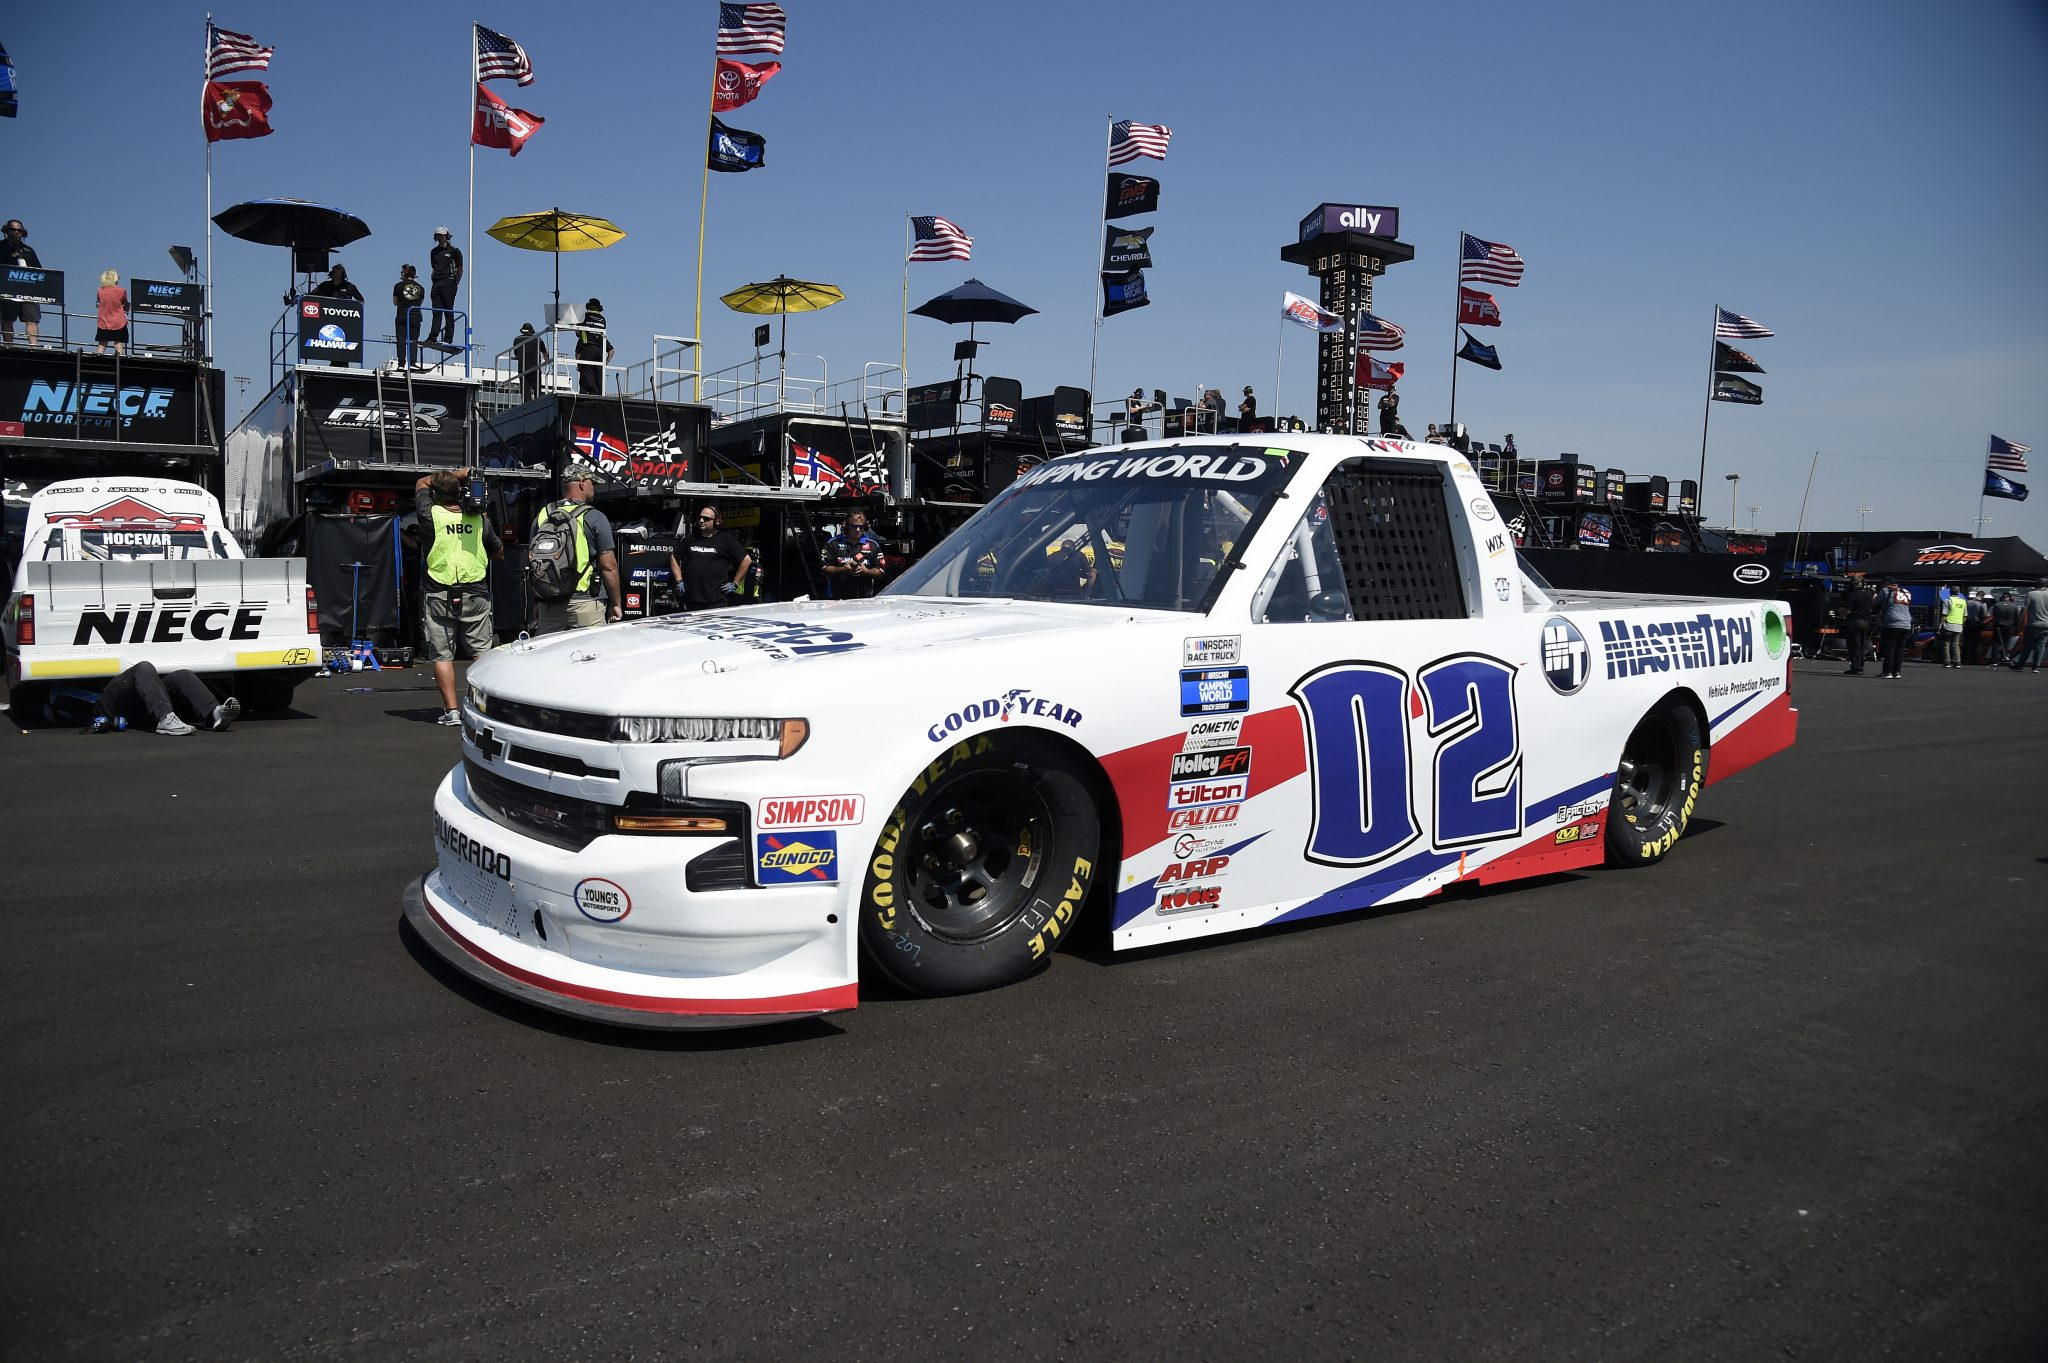 LEBANON, TENNESSEE - JUNE 18: Kris Wright, driver of the #02 MasterTech Chevrolet, drives in the garage area during practice for the NASCAR Camping World Truck Series Rackley Roofing 200 at Nashville Superspeedway on June 18, 2021 in Lebanon, Tennessee. (Photo by Logan Riely/Getty Images) | Getty Images